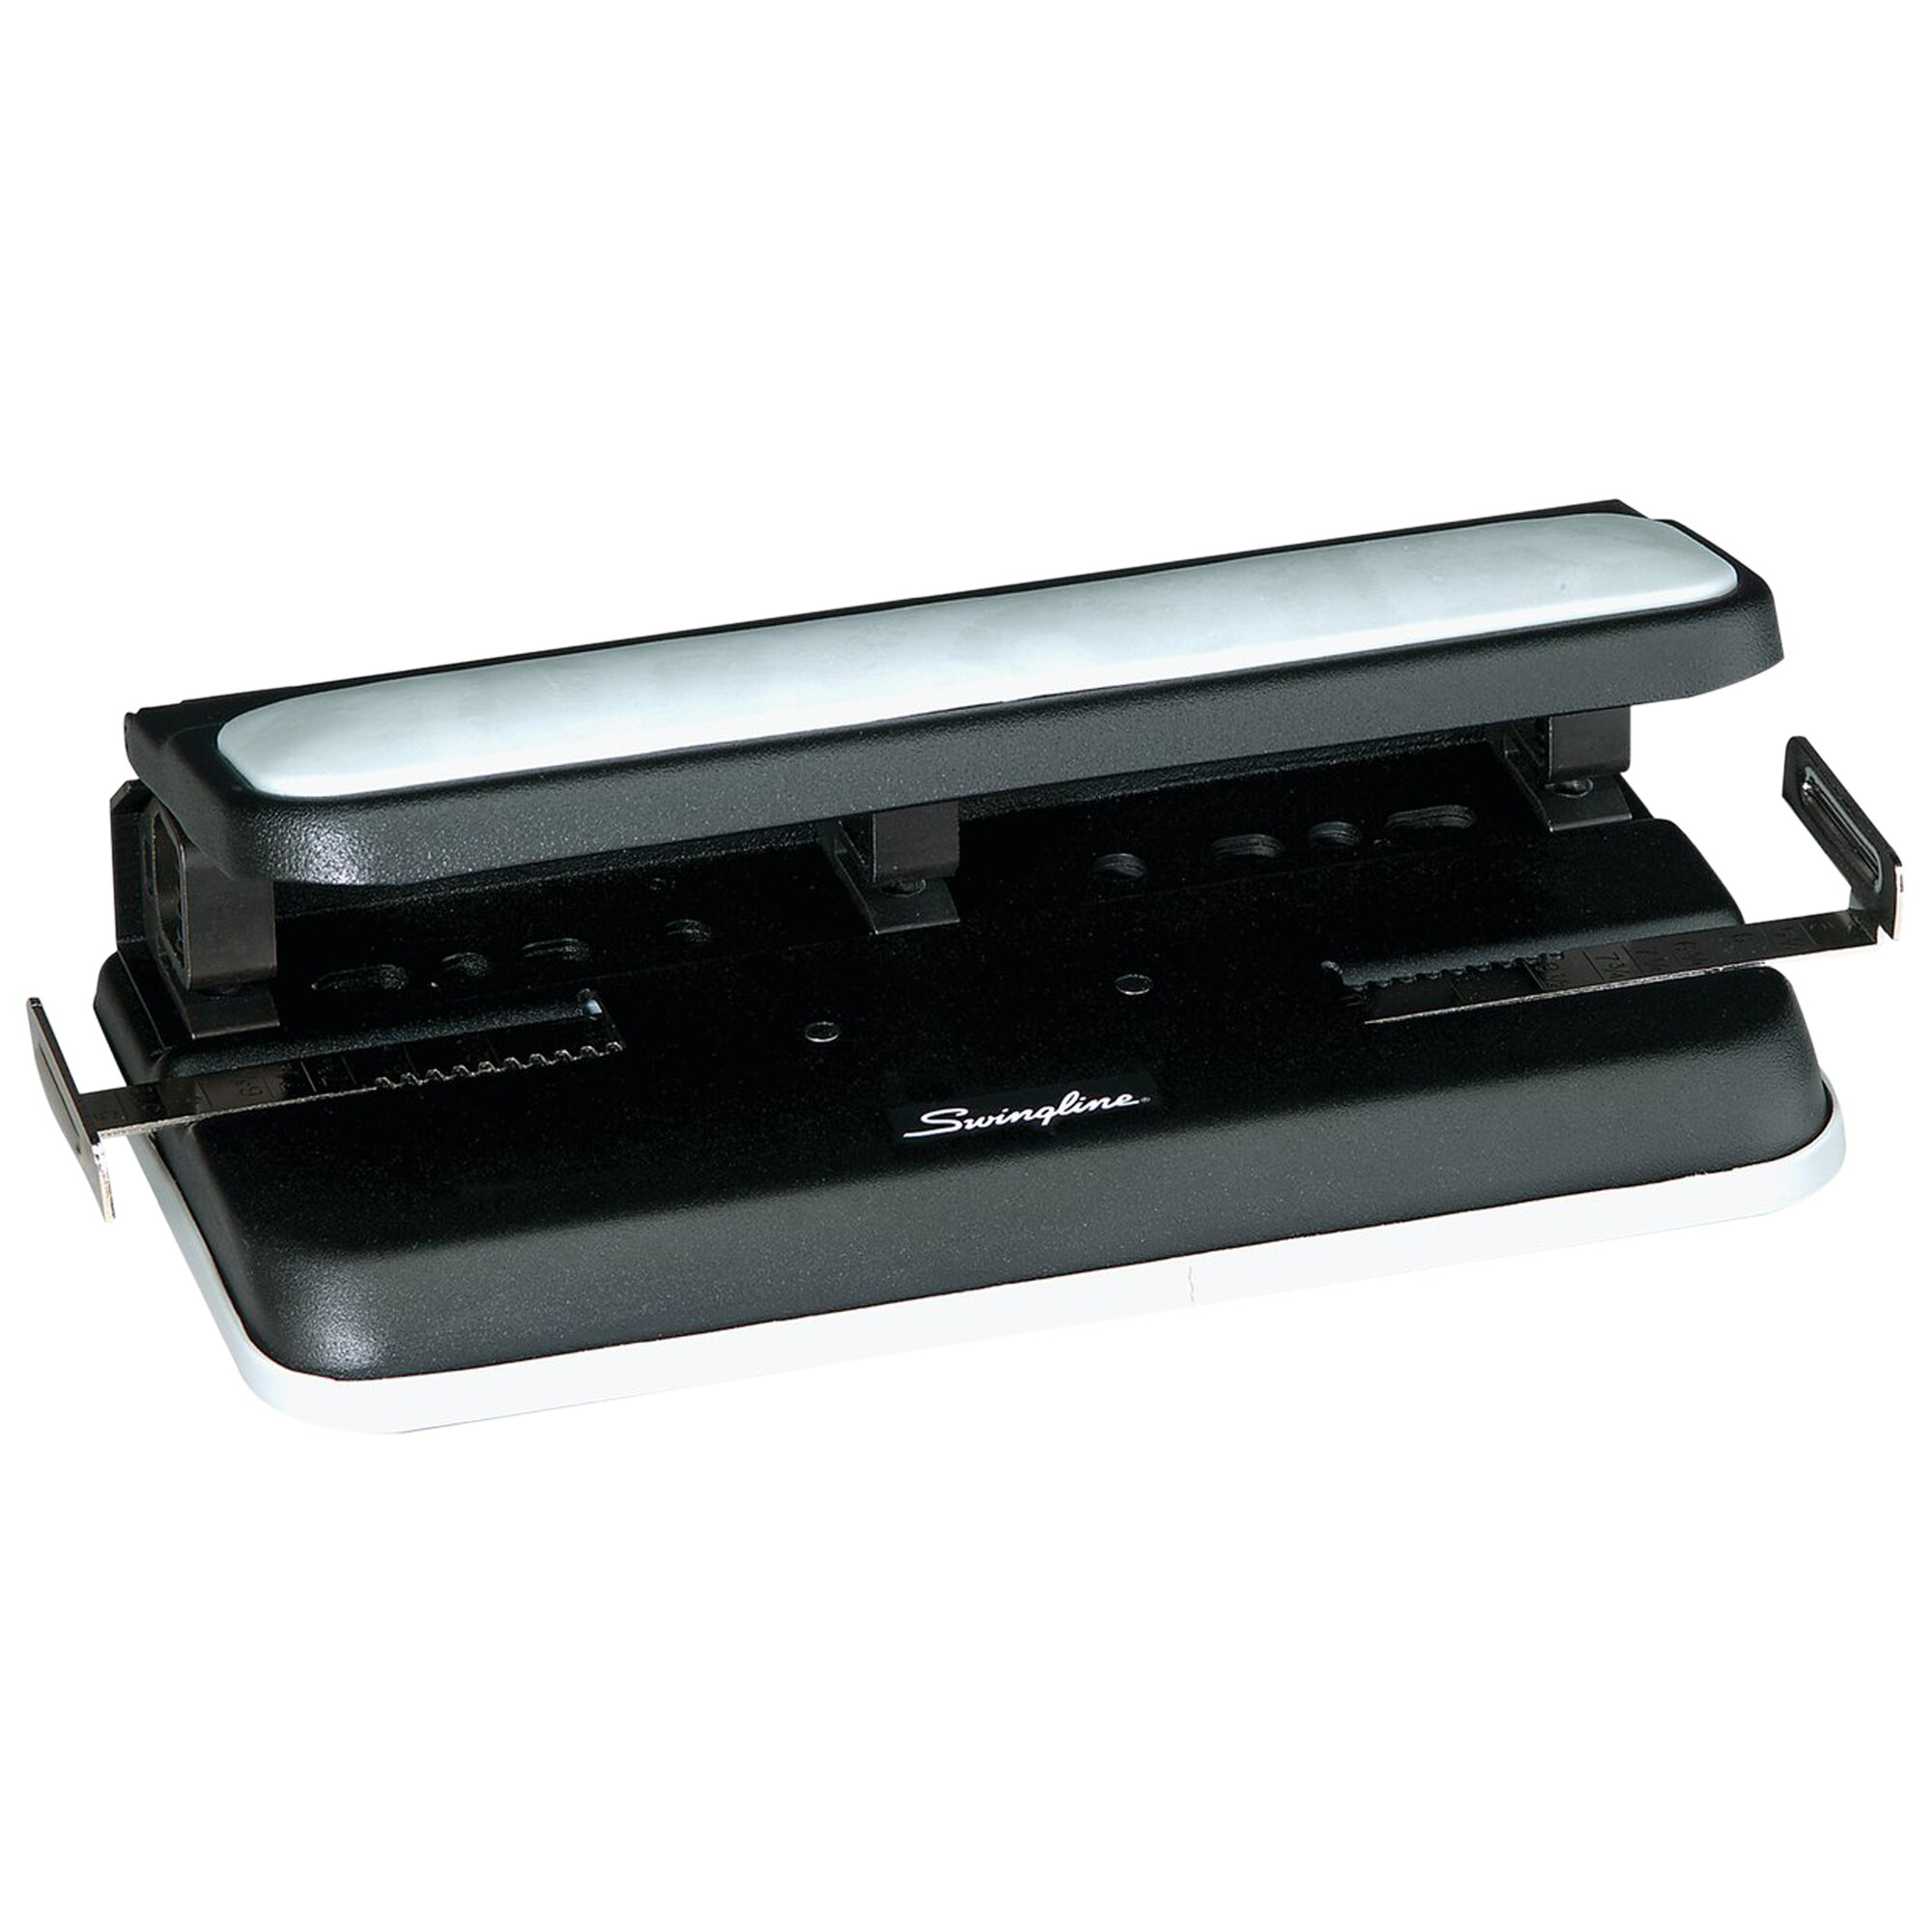 "32-Sheet Easy Touch Two-to-Seven-Hole Punch, 9/32"" Holes, Black/Gray"